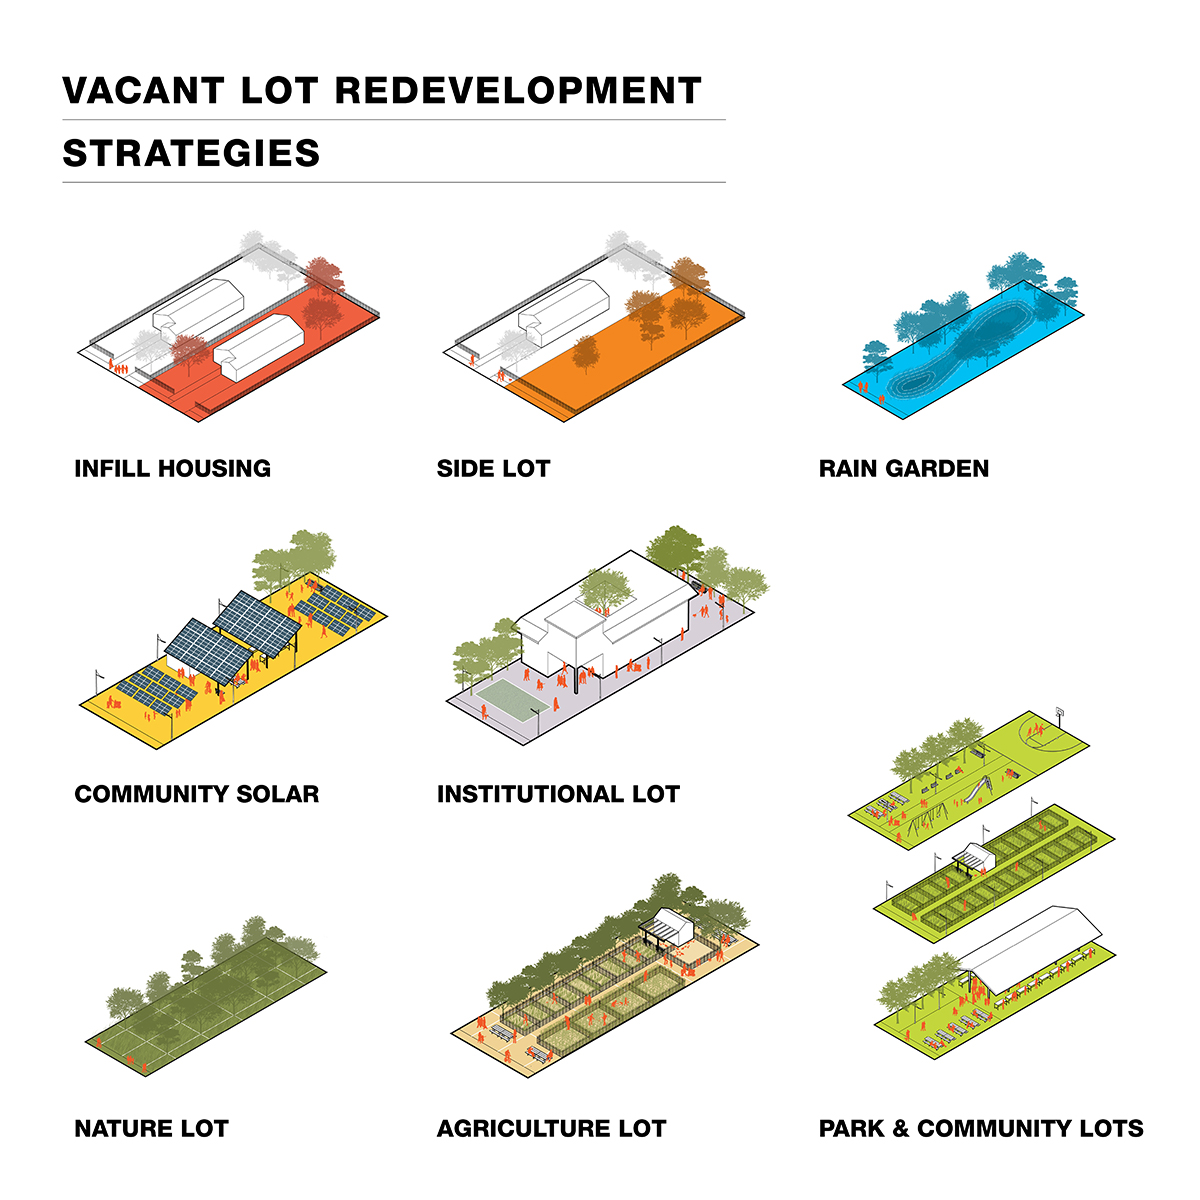 A rendering by Sasaki of vacant lot development strategies for the South Cypress Creek and West Junction Neighborhood Design Implementation. Vacant lot strategies include new renewable energy lots, green infrastructure lots, and park lots.